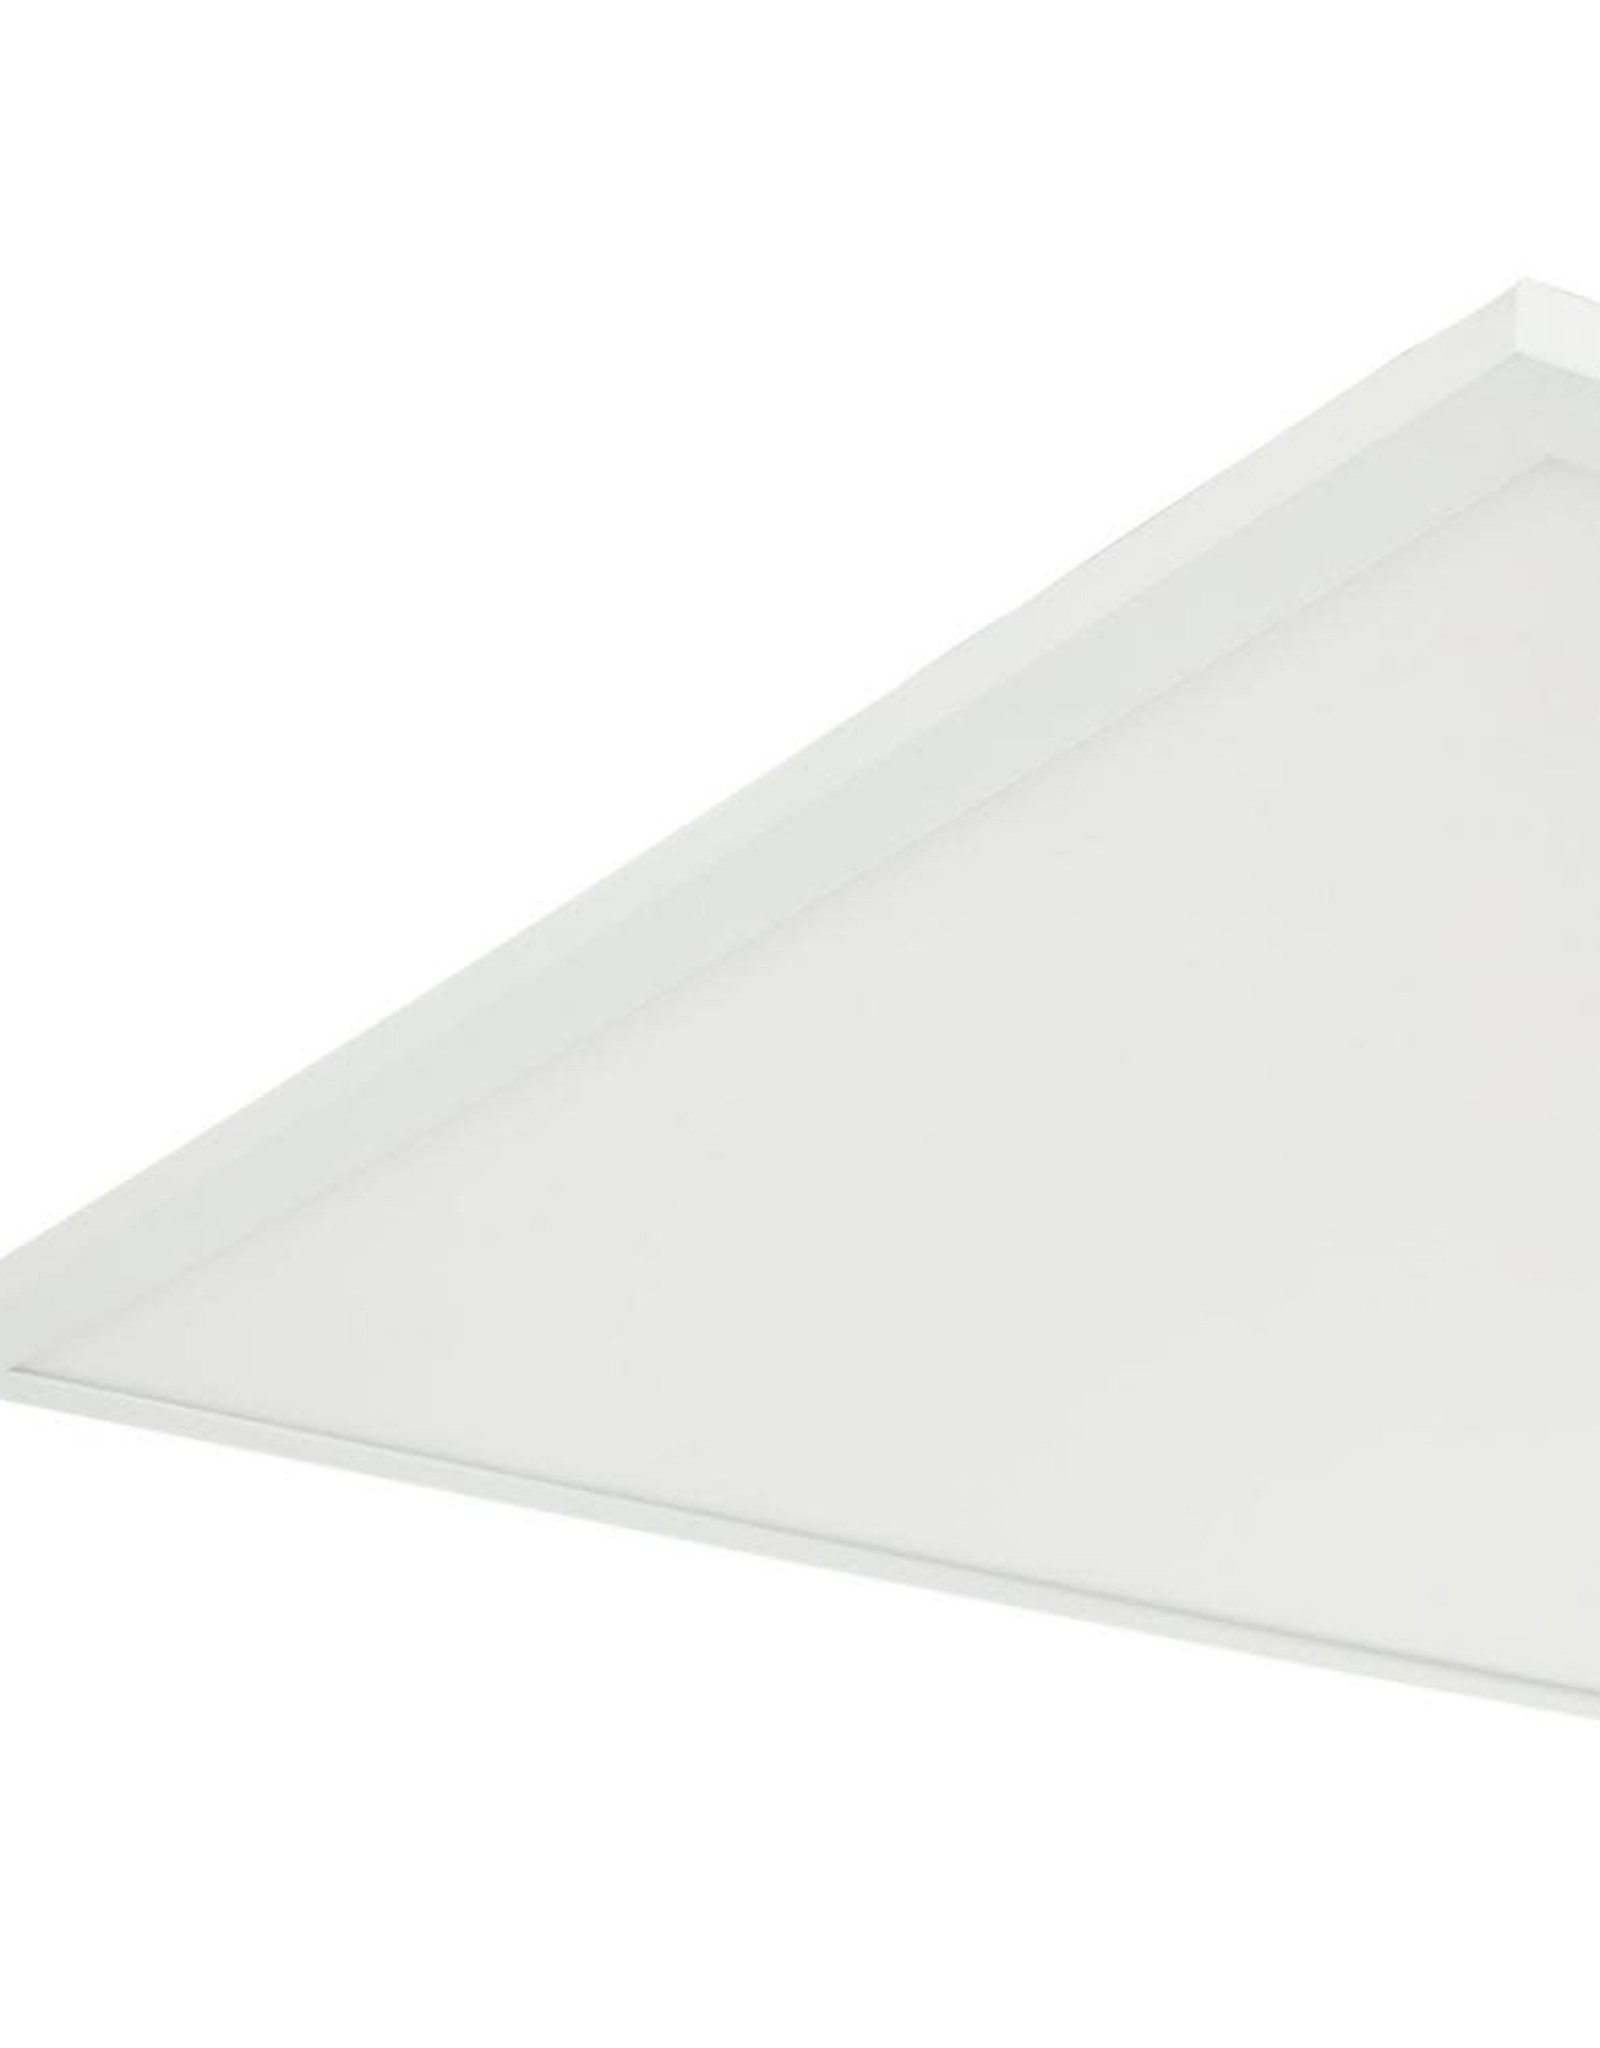 2 ft. x 4 ft. White Integrated LED Dimmable Flat Panel Light with Selectable Color Temperature